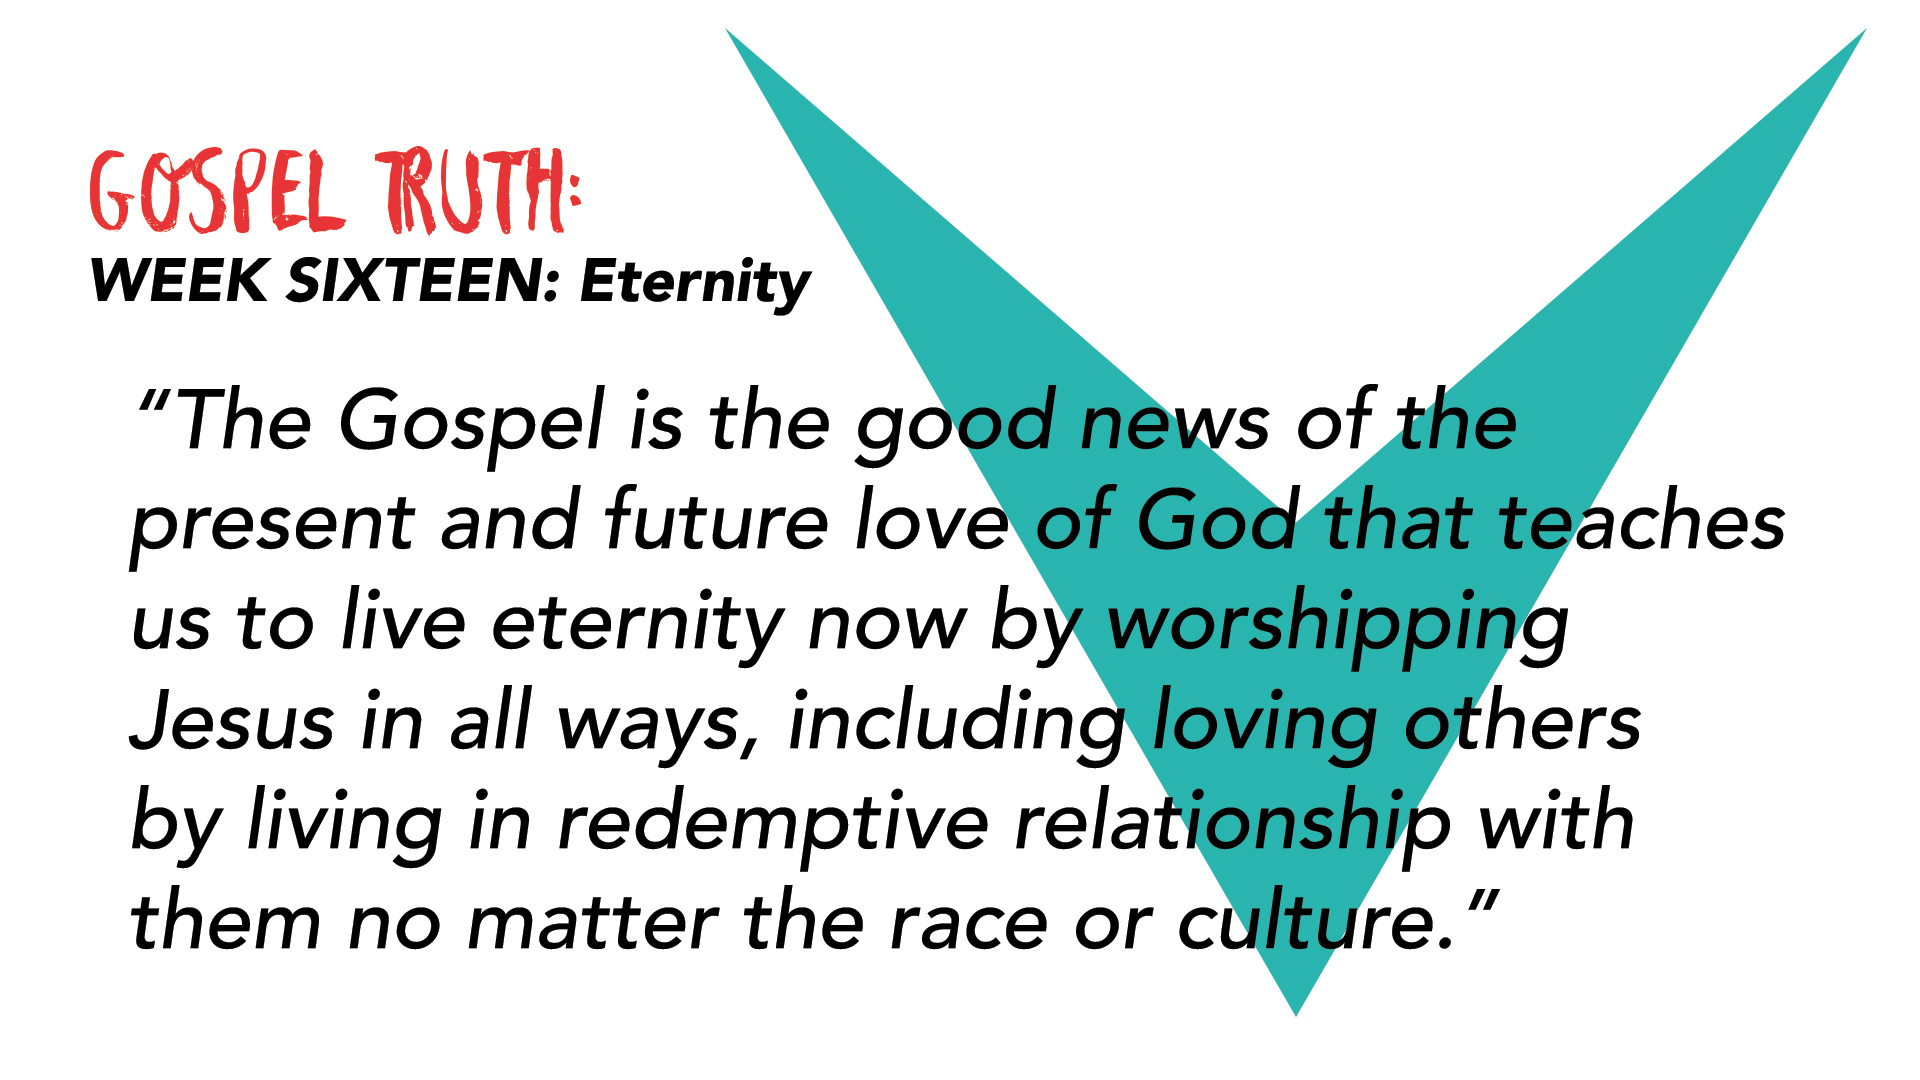 The Gospel is the good news of the present and future love of God that teaches us to live eternity now by worshipping Jesus in all ways, including loving others by living in redemptive relationship with them no matter the race or culture.